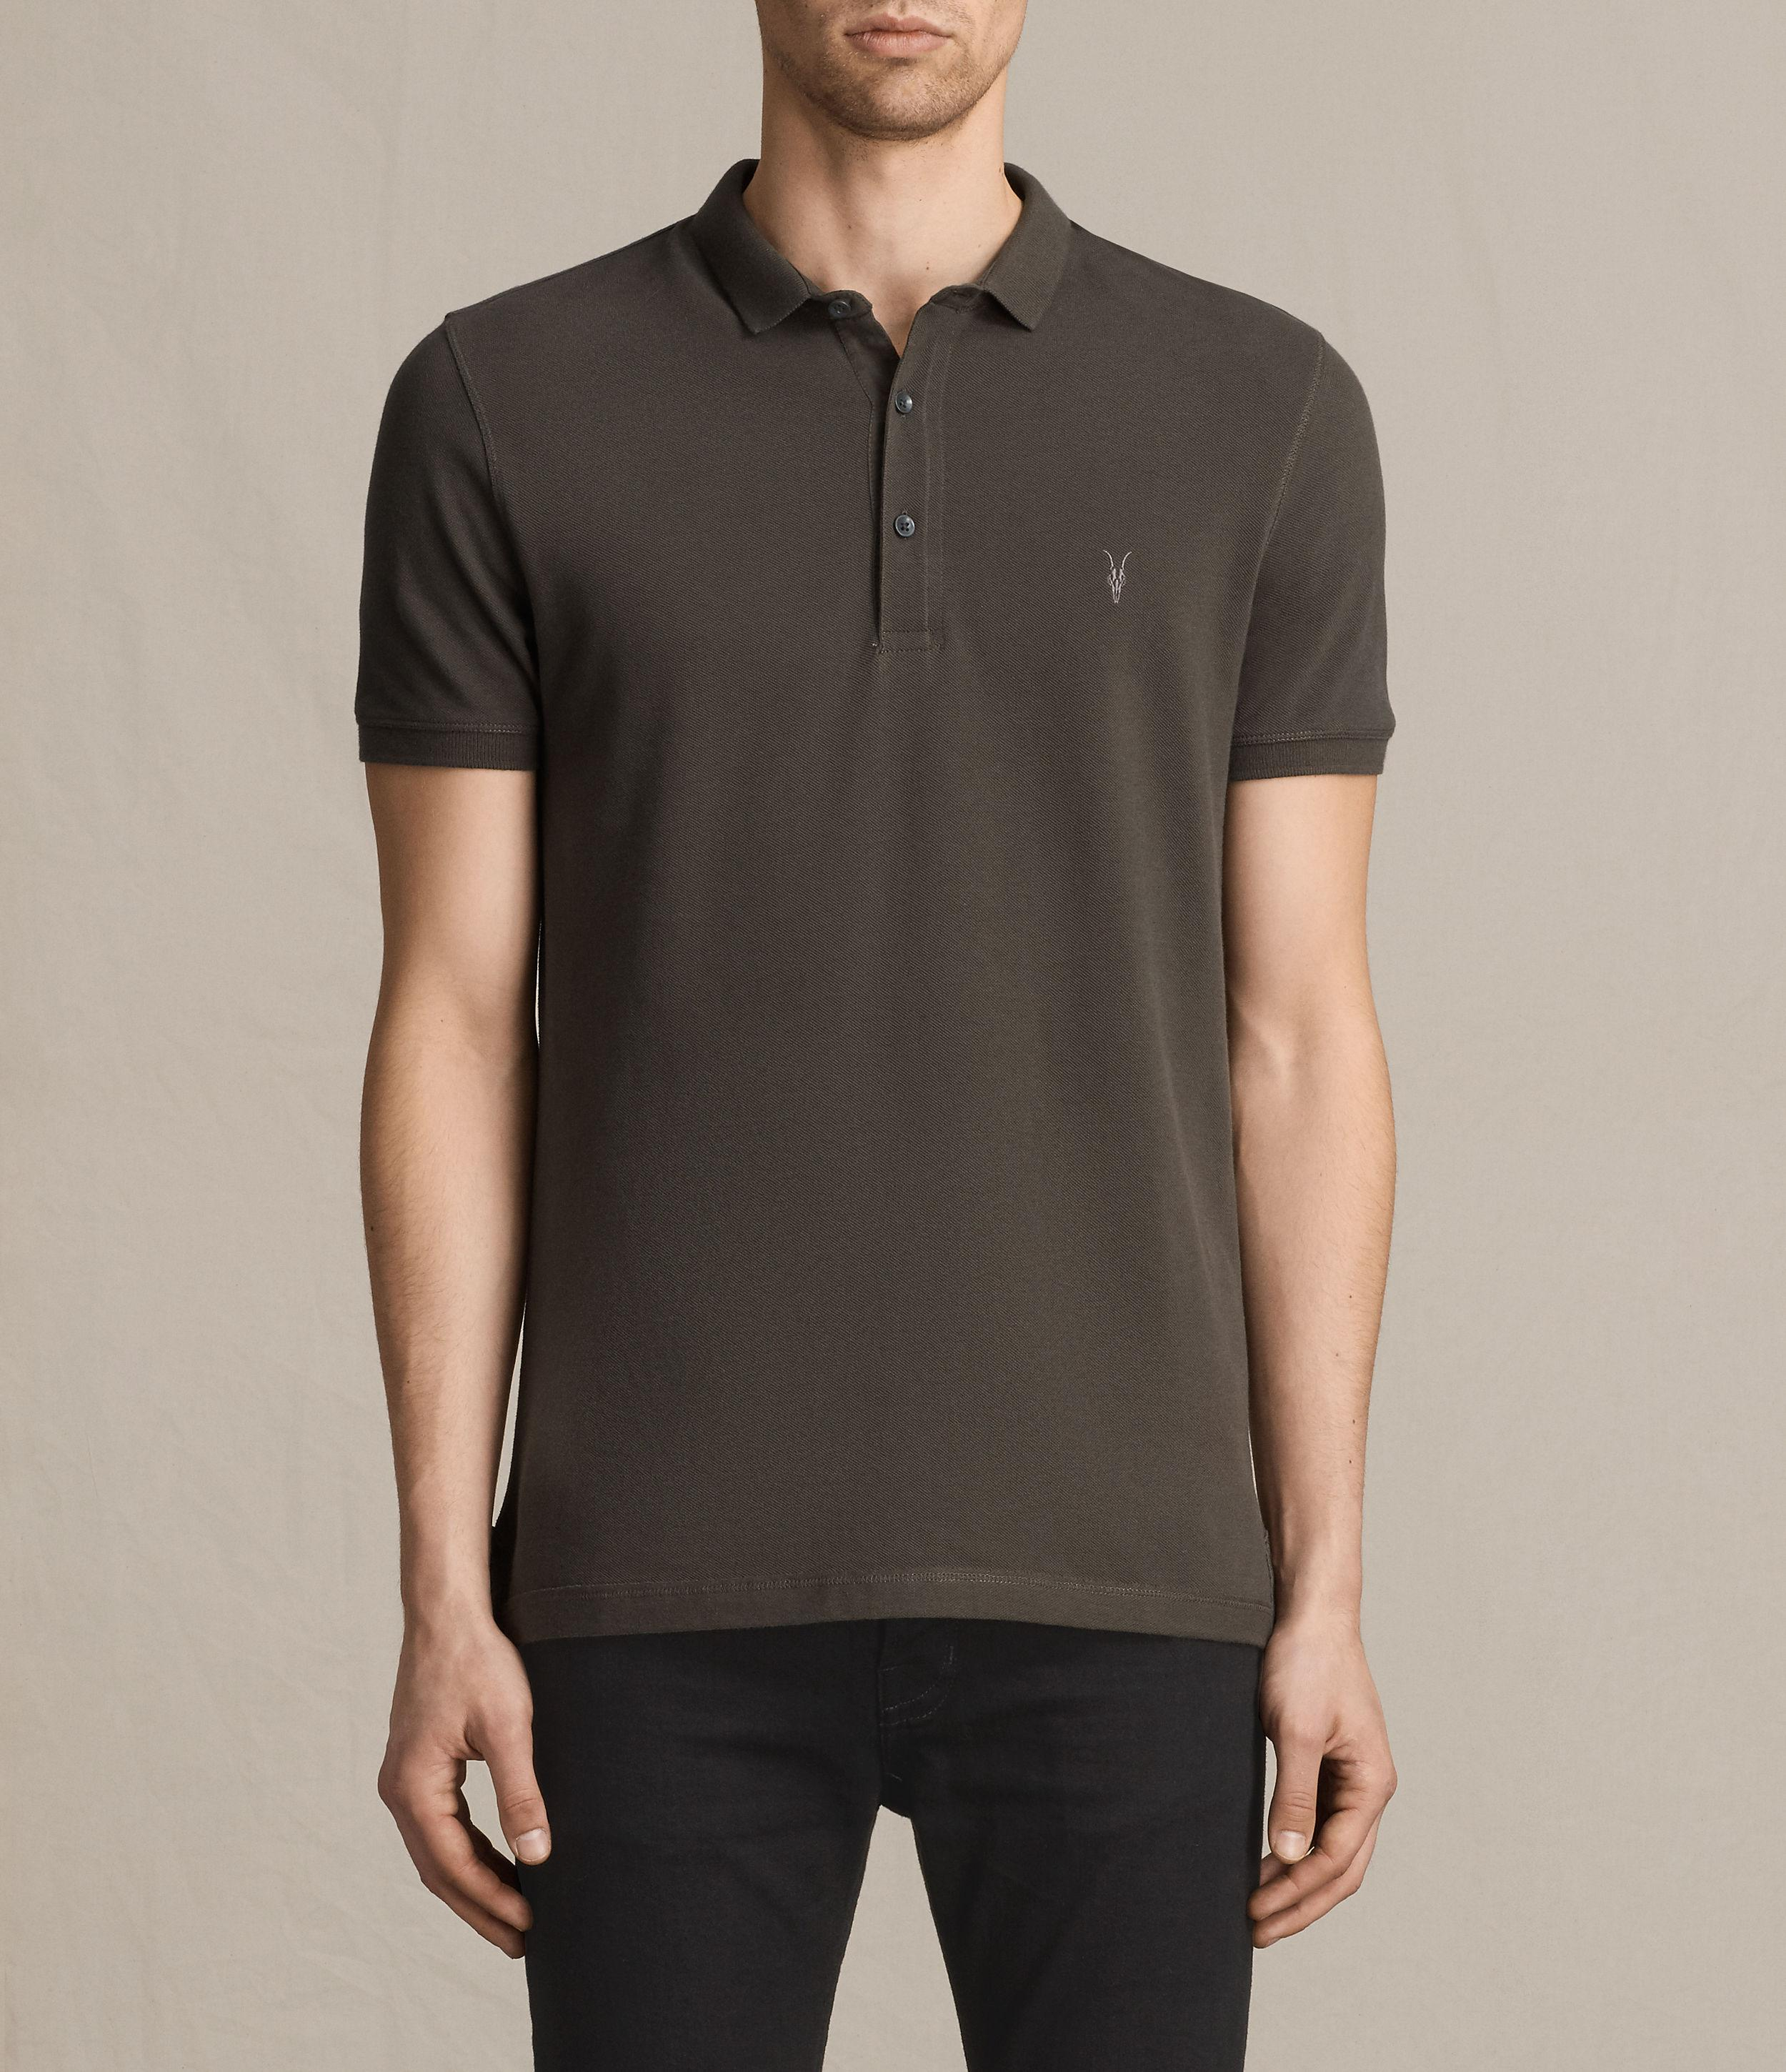 Allsaints reform polo shirt in green for men lyst for All saints polo shirt